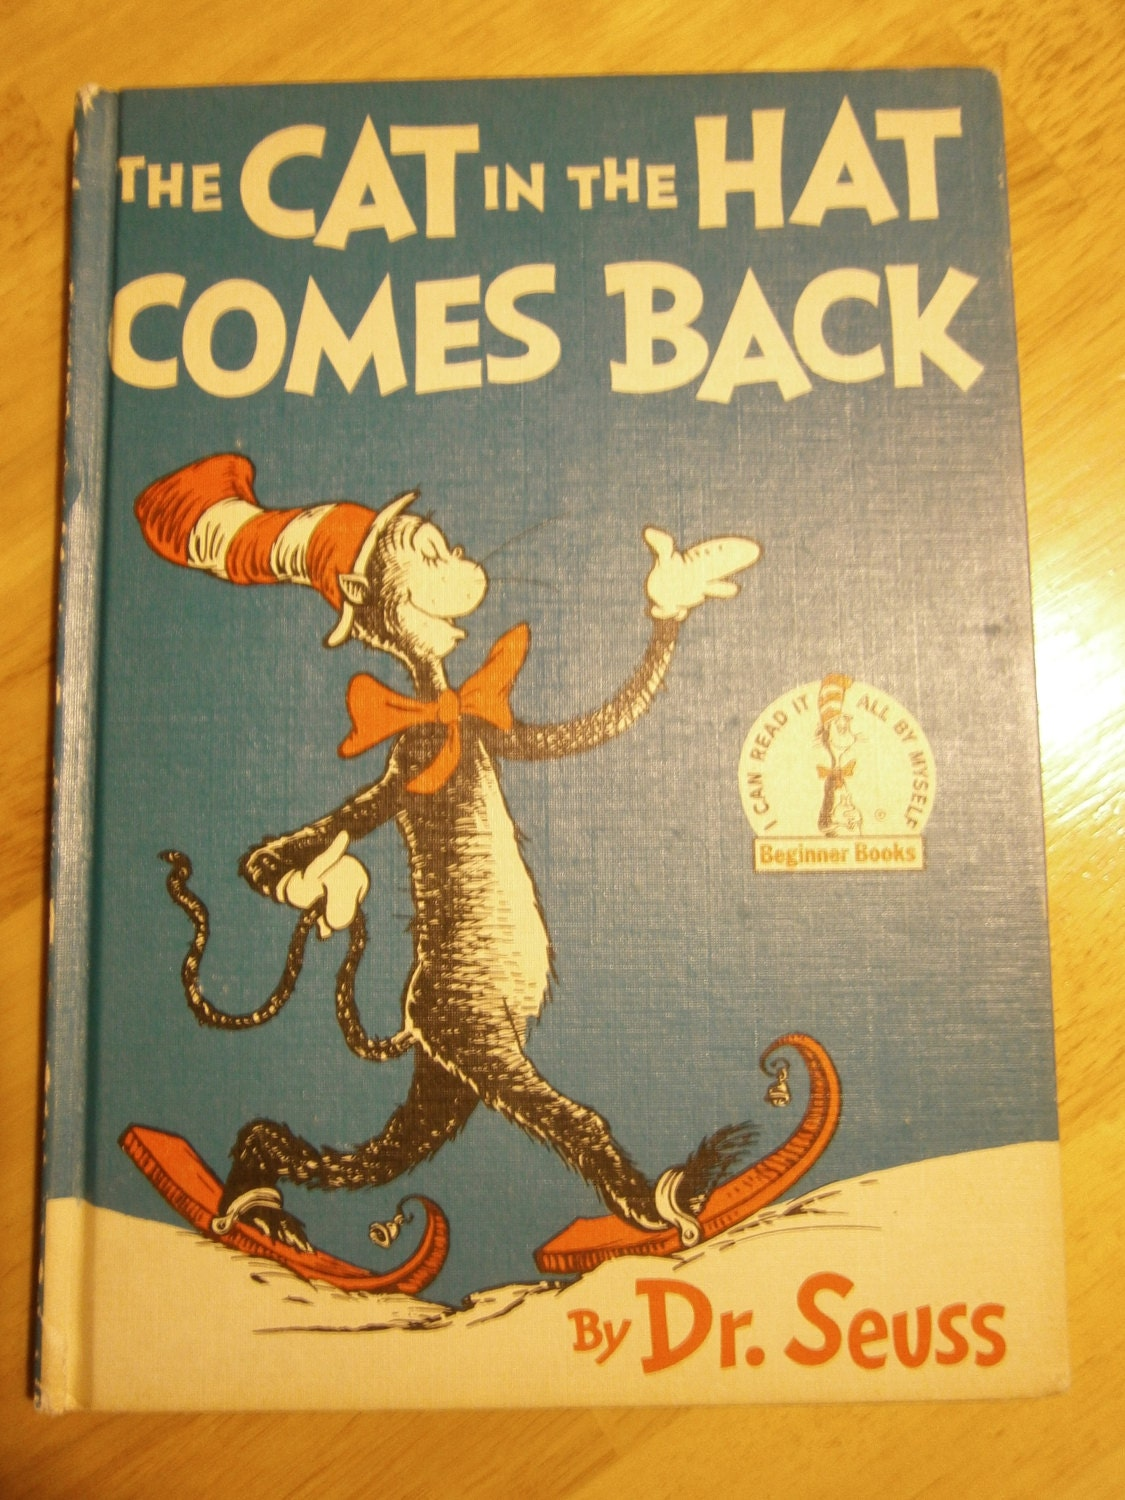 The cat in the hat comes back book review